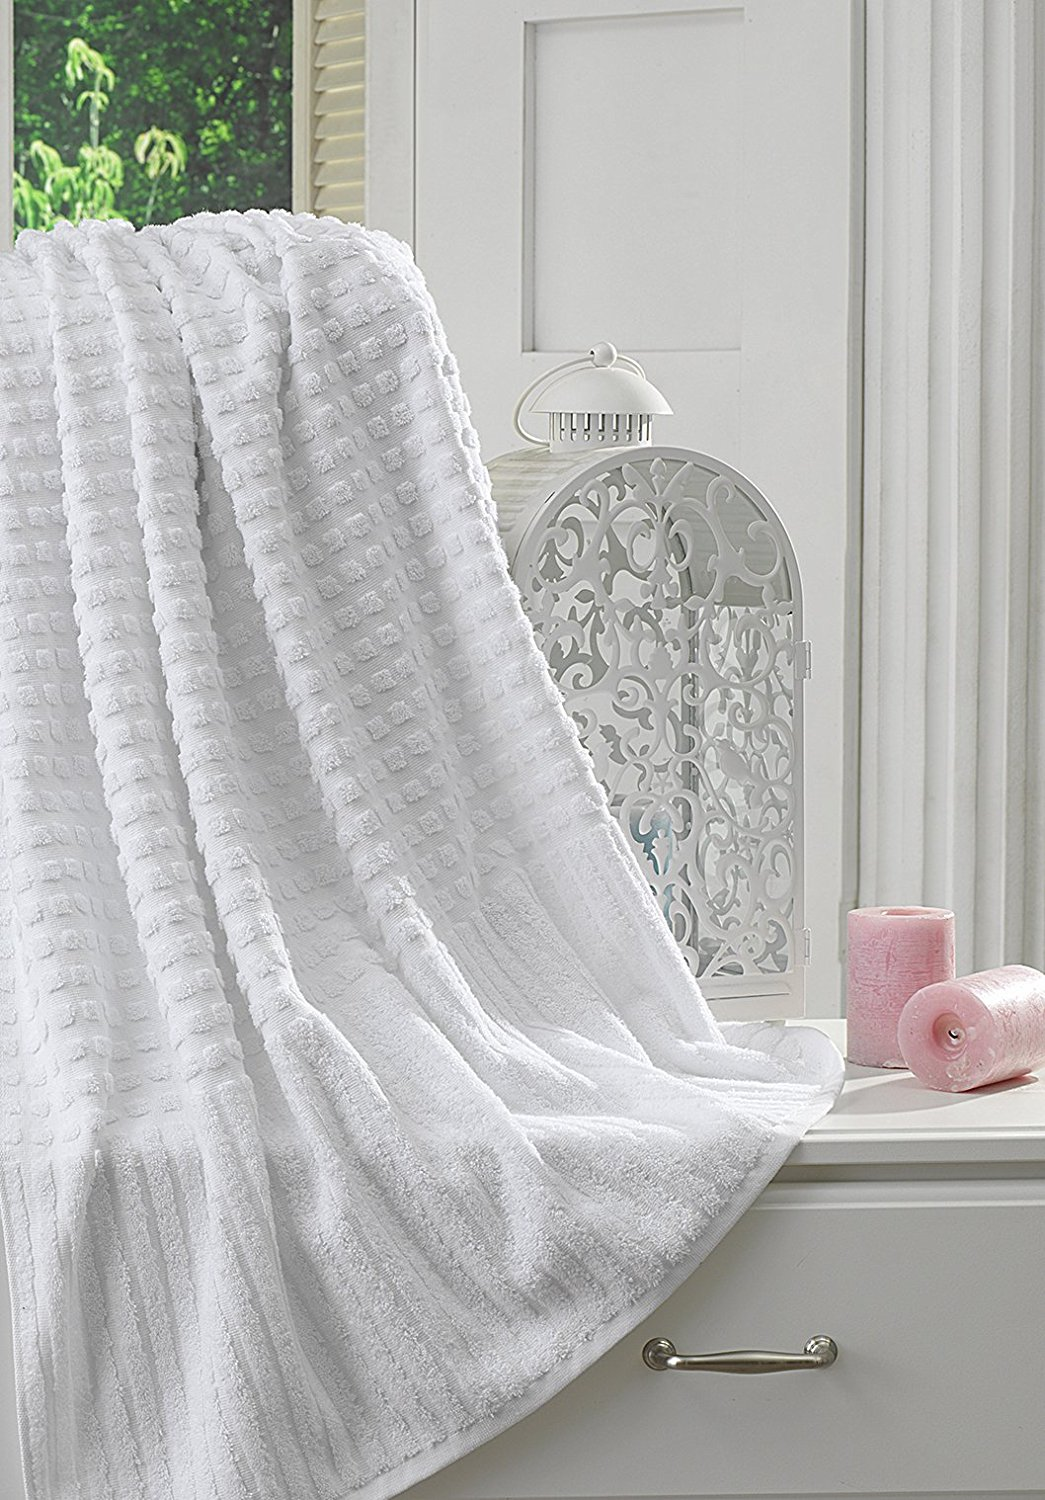 best bath towel, bath sheet, big bath towel